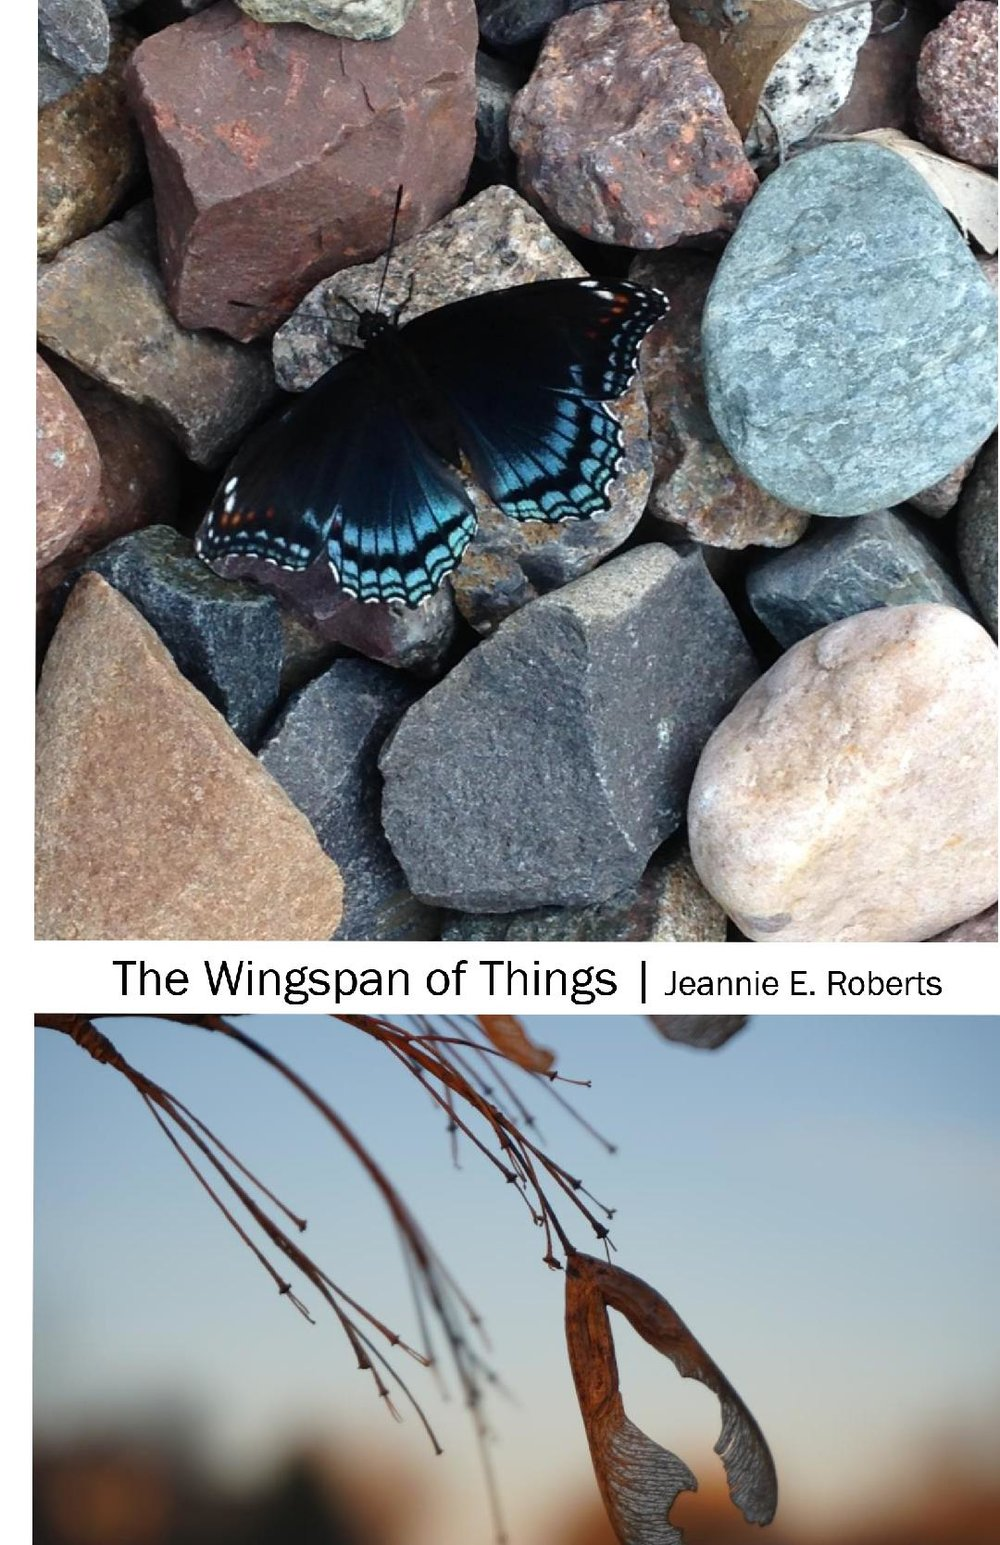 The Wingspan of Things_Cover.jpg